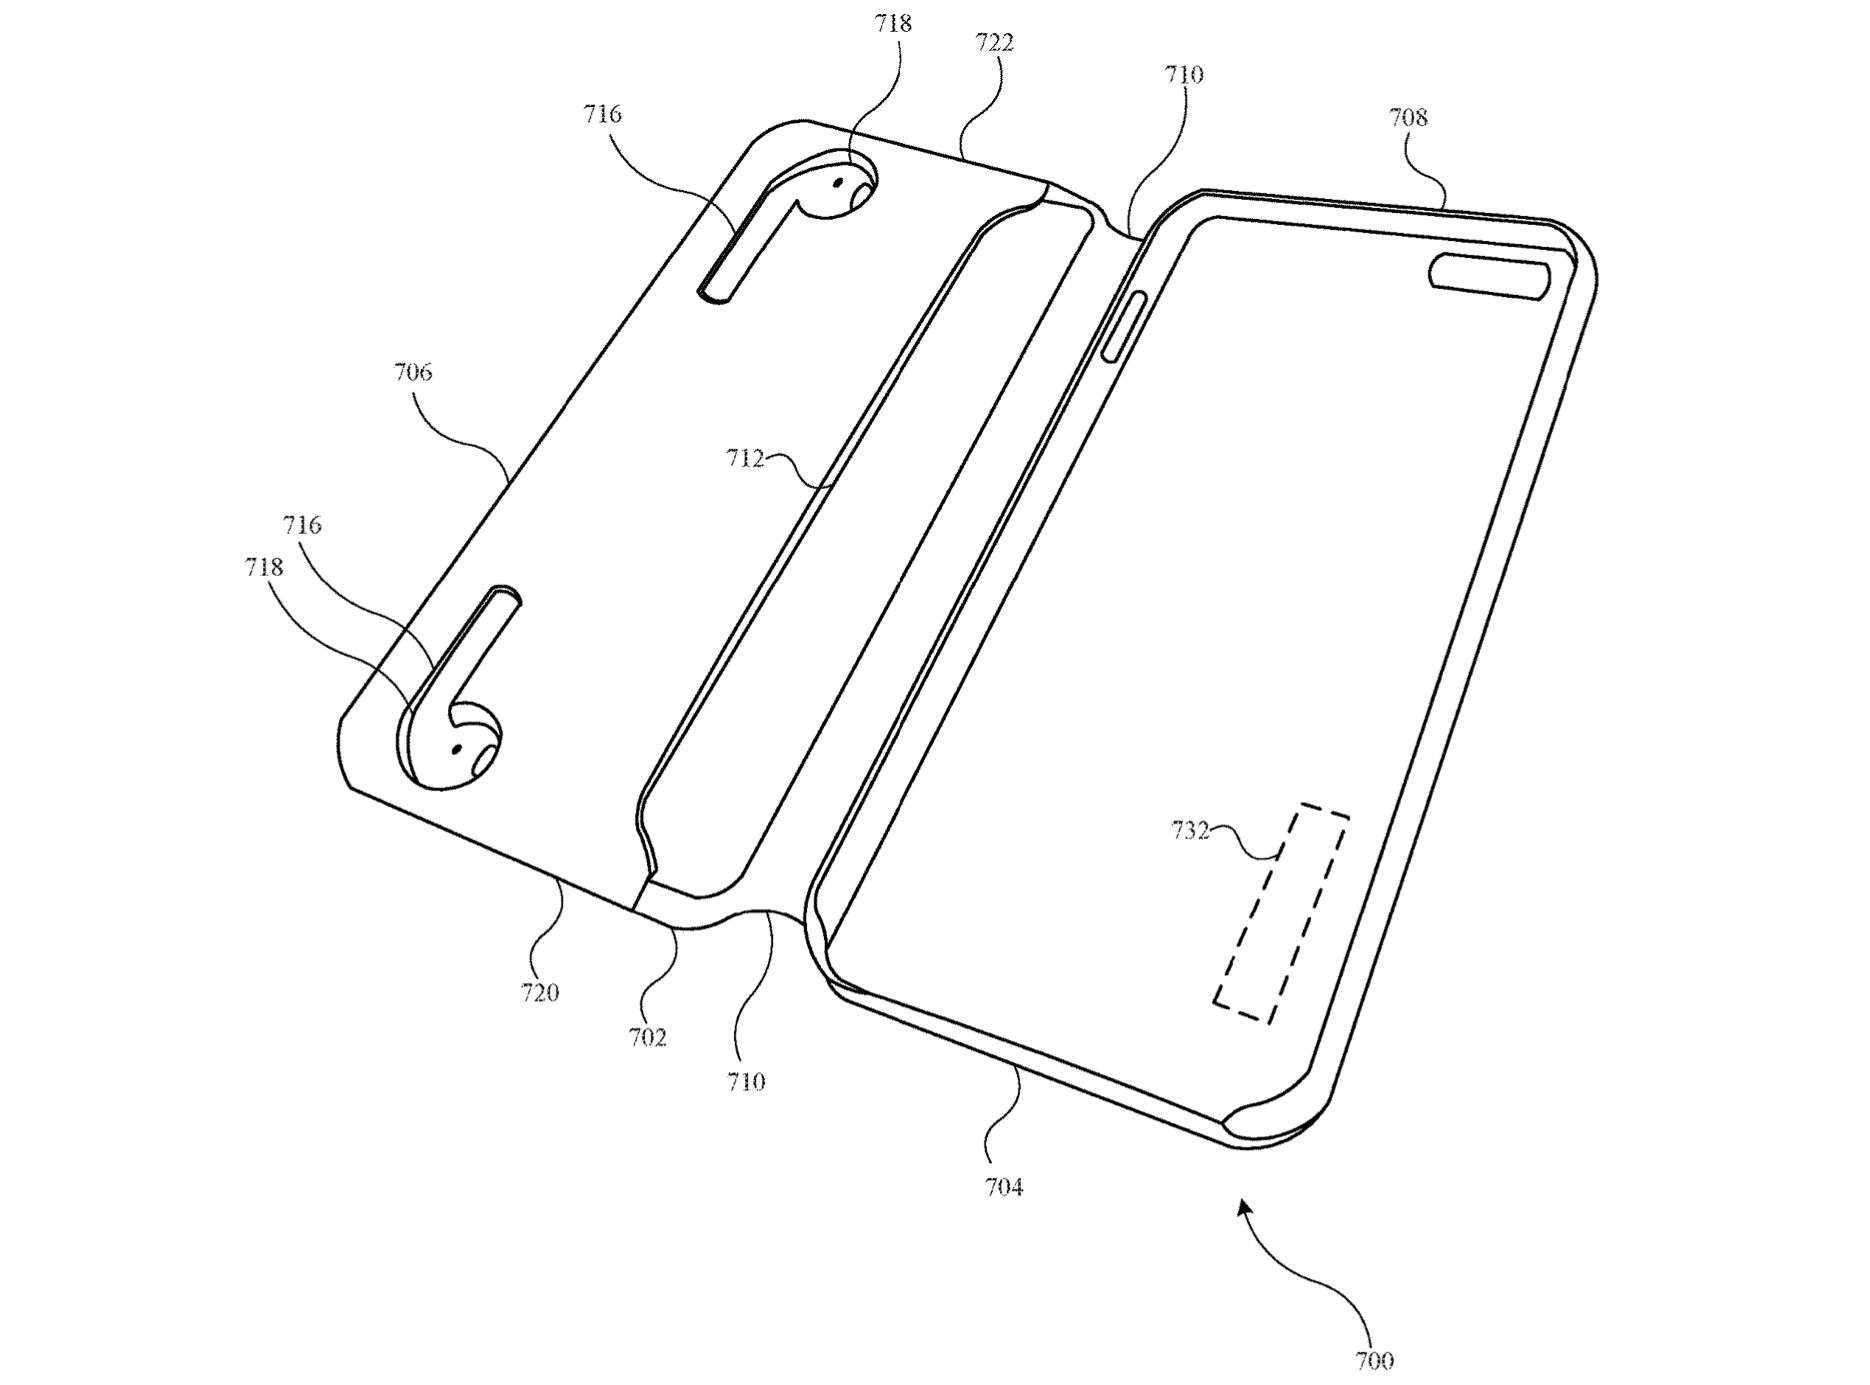 Apple Researching iPhone Cases That Can Charge AirPods and Other Accessories